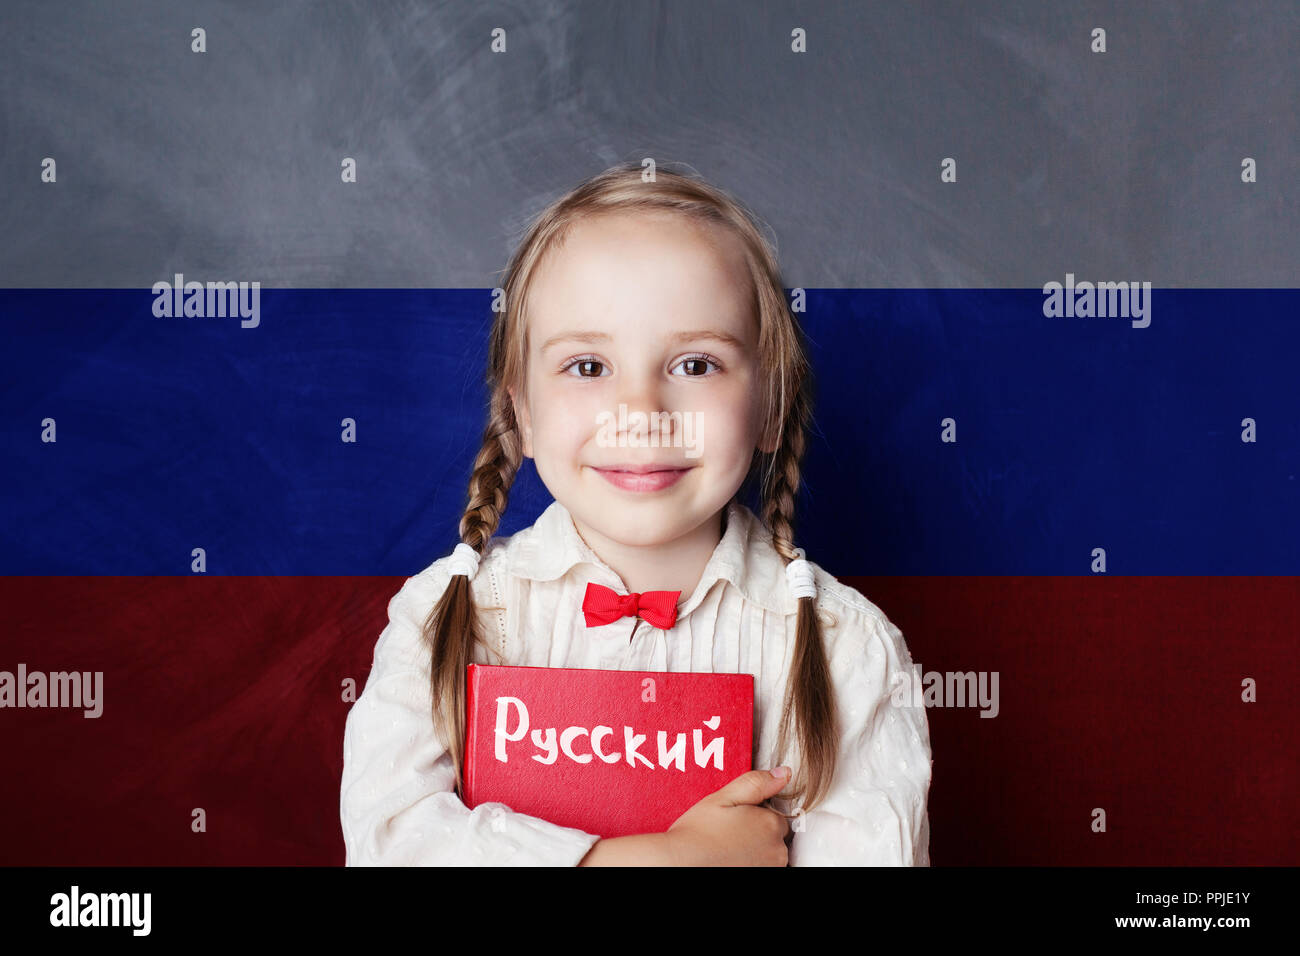 Learn russian language. Child girl student with book against the russian flag background - Stock Image